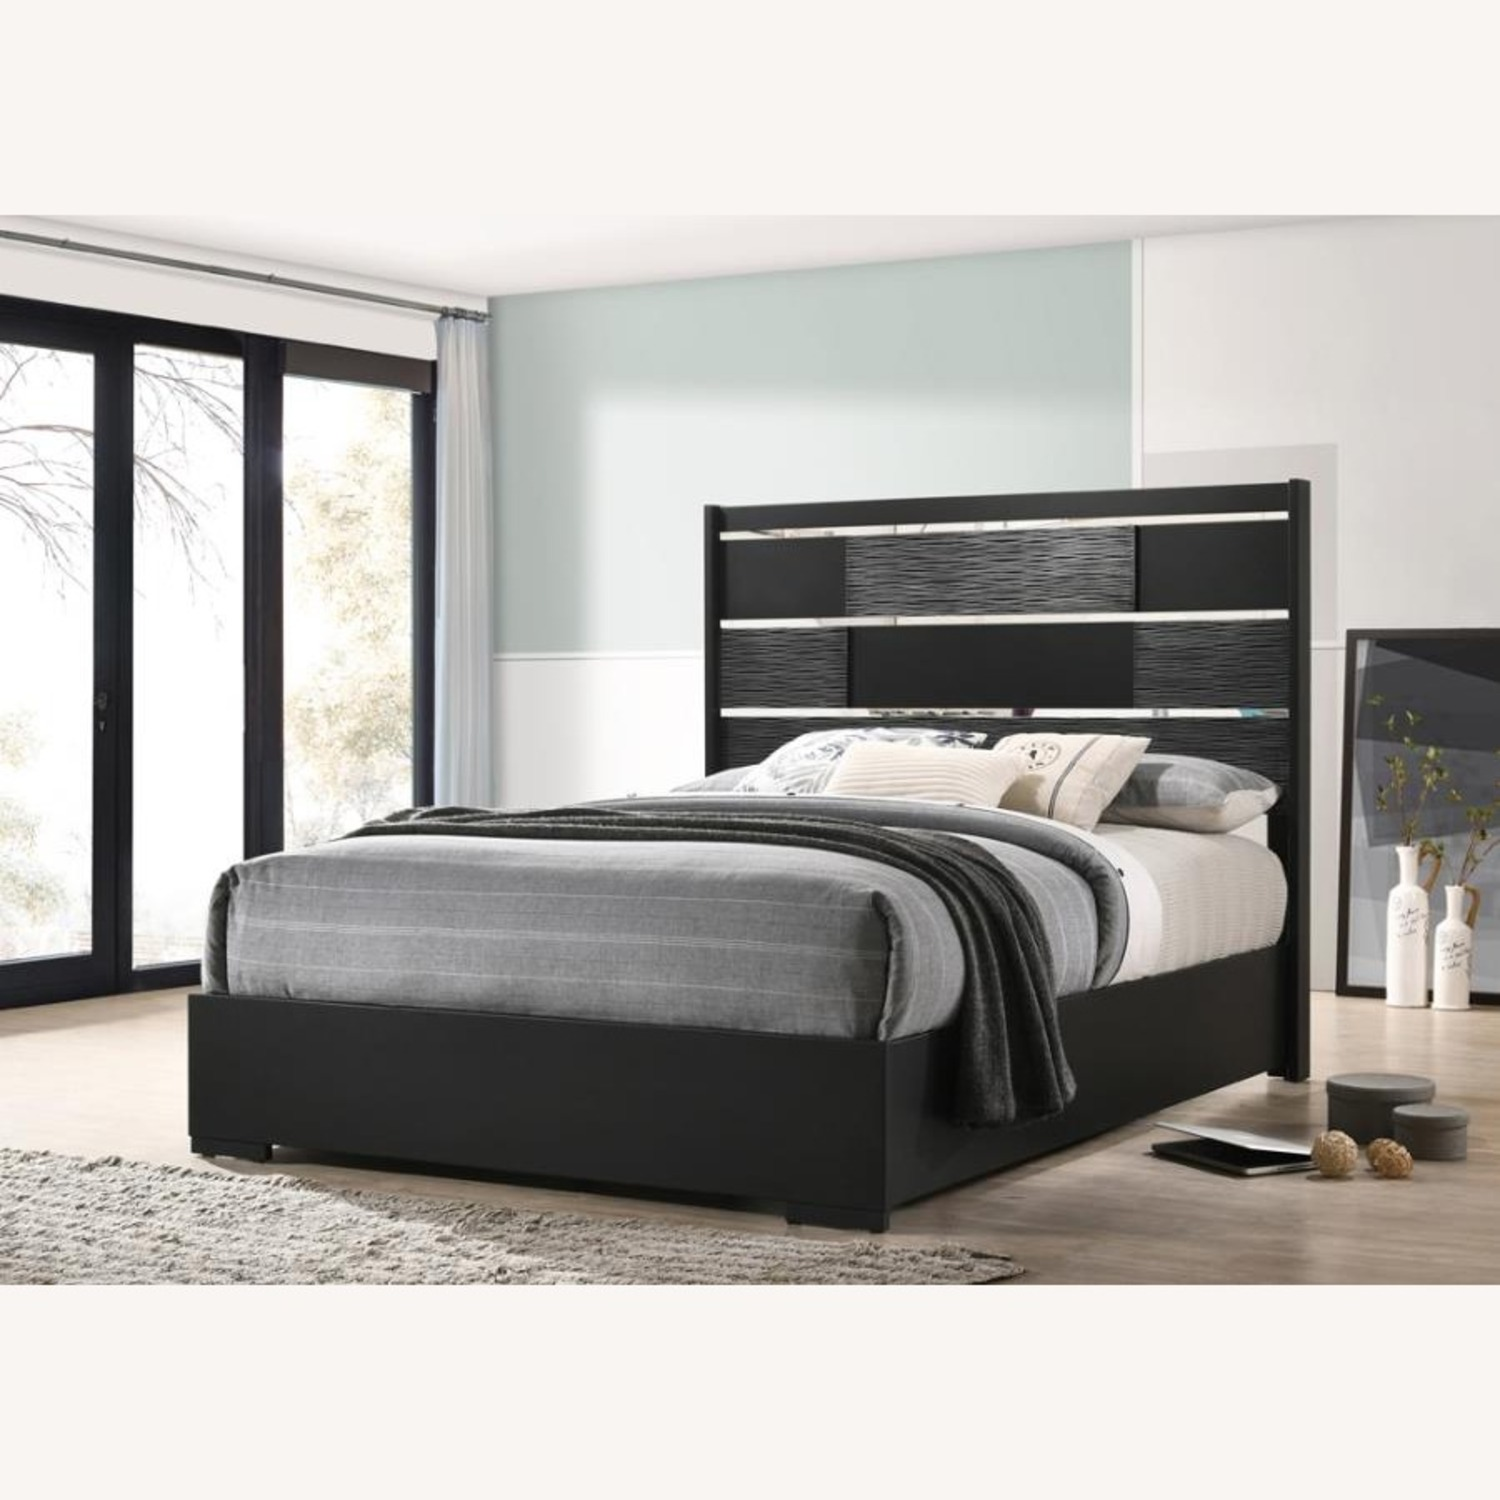 King Bed In Black Wood Finish W/ Chambered Trim - image-1